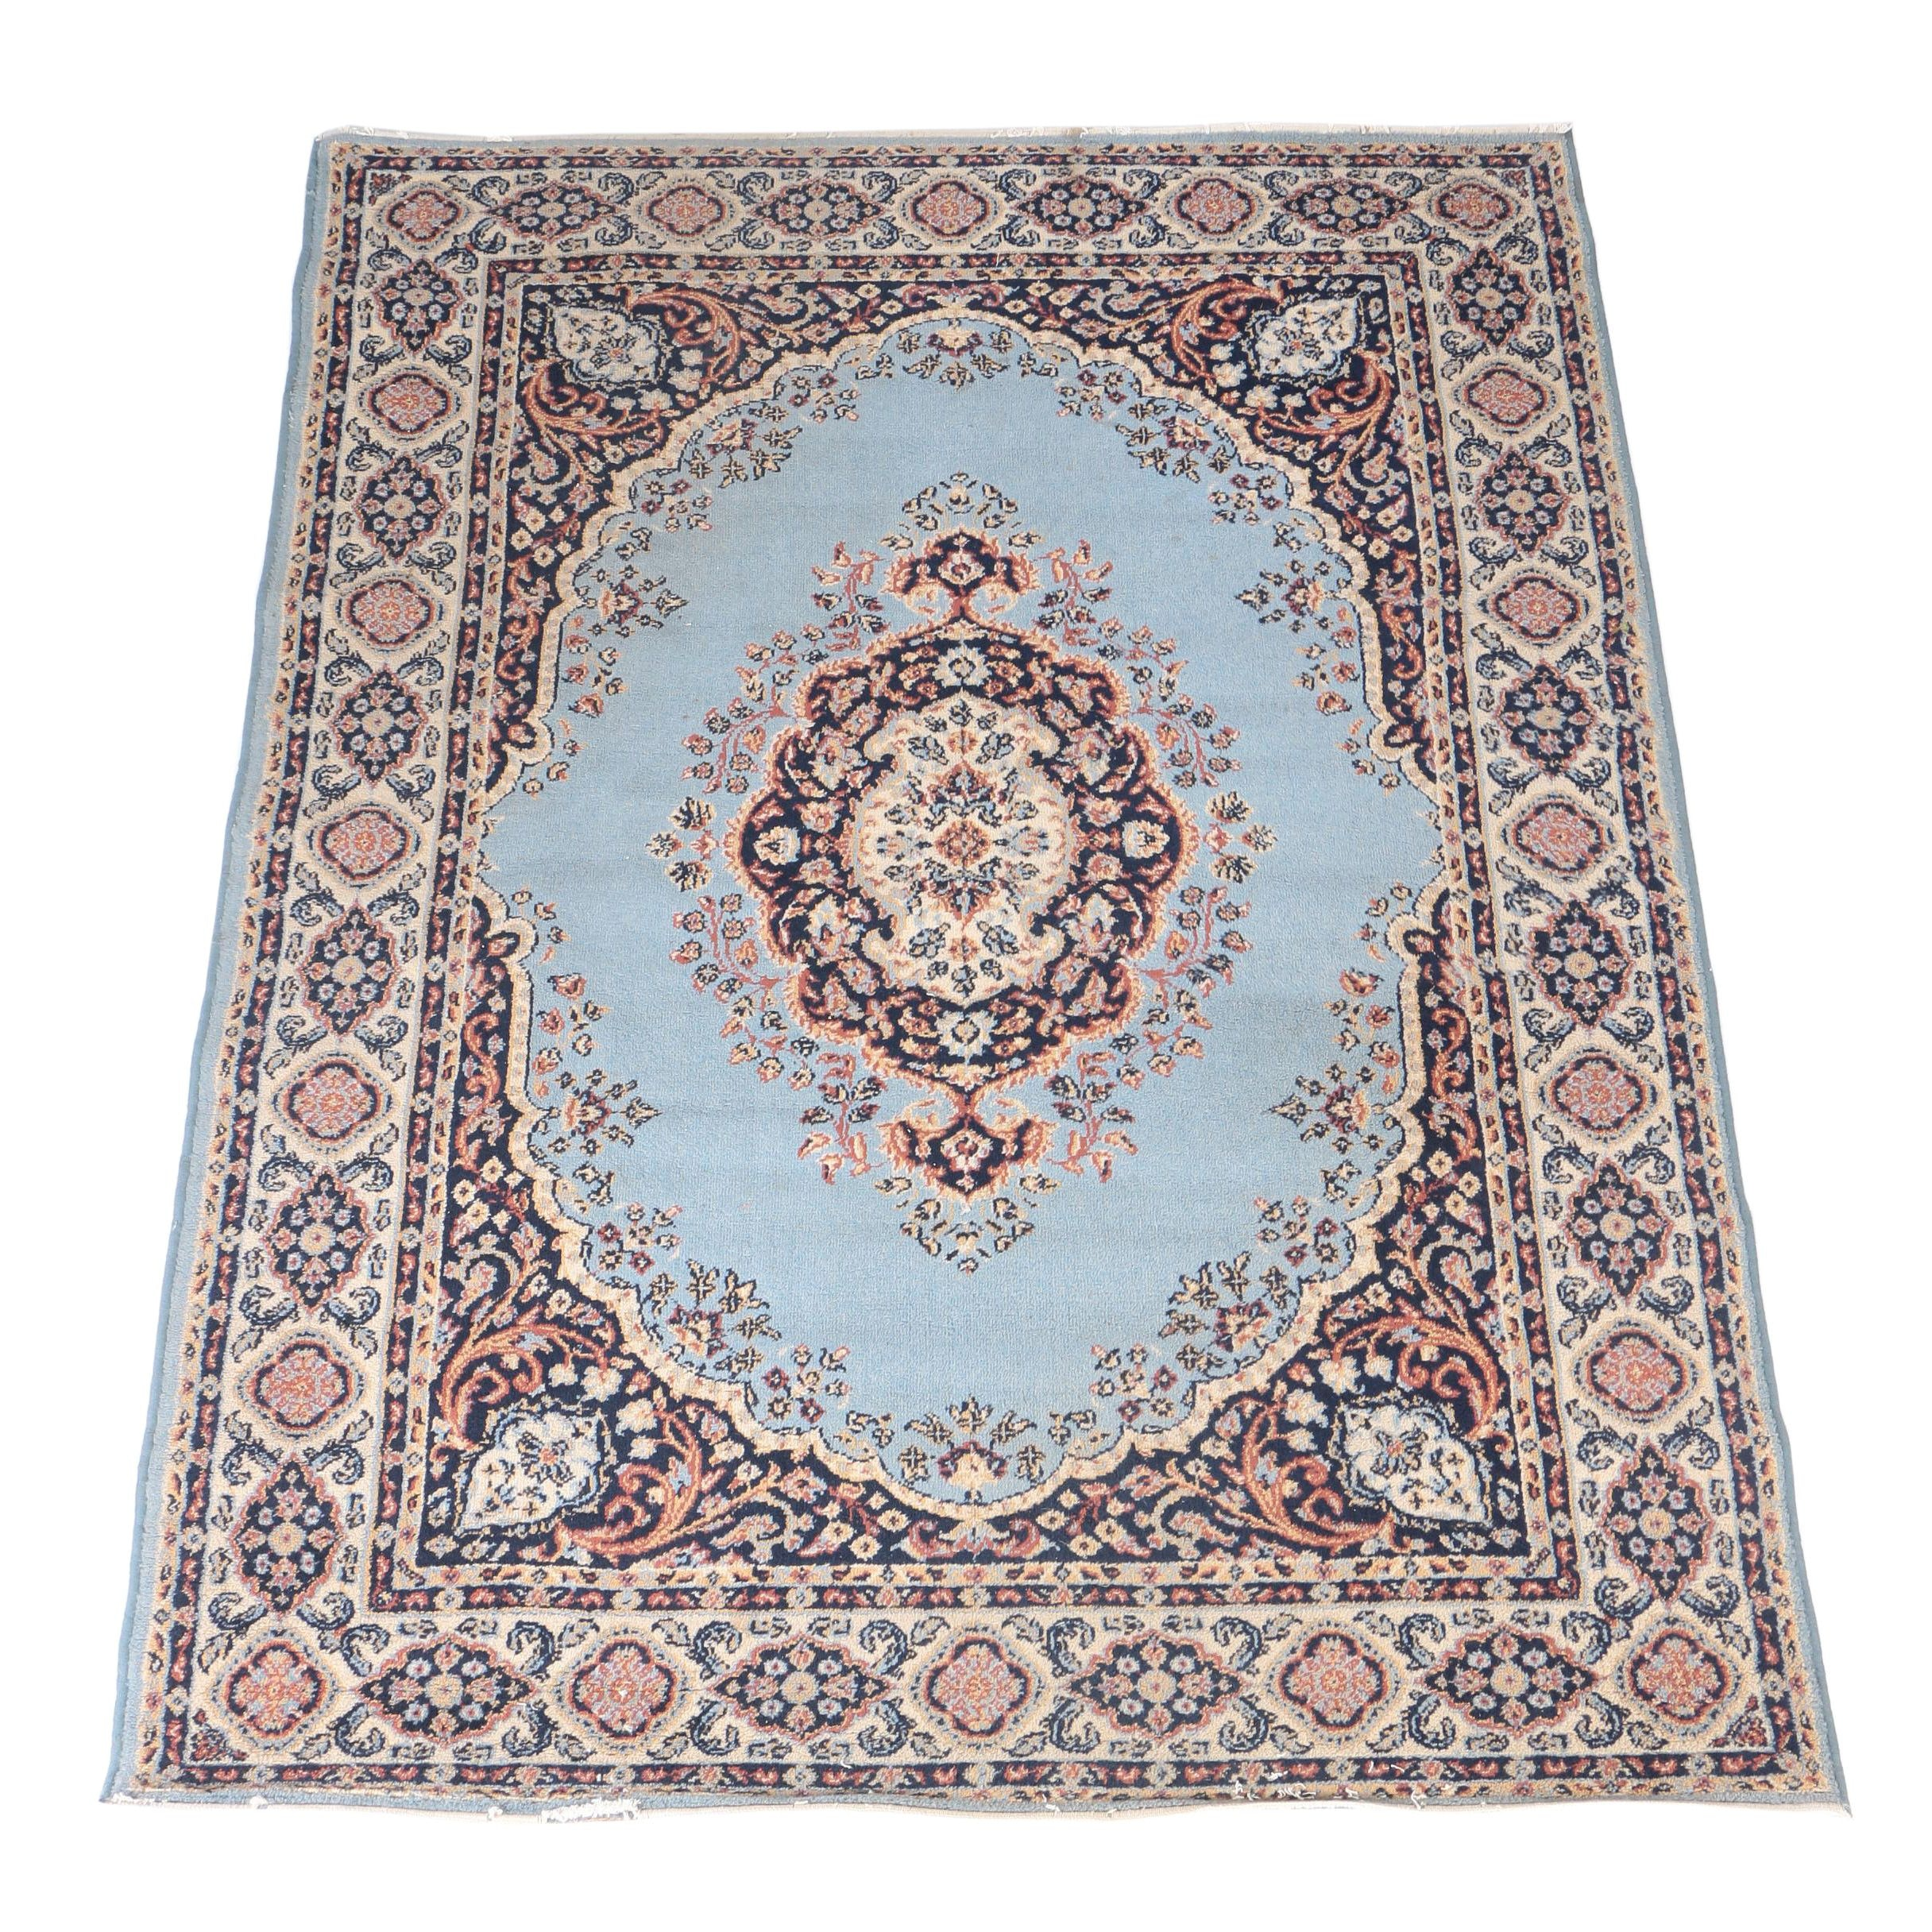 Power-Loomed Persian-Inspired Wool Area Rug